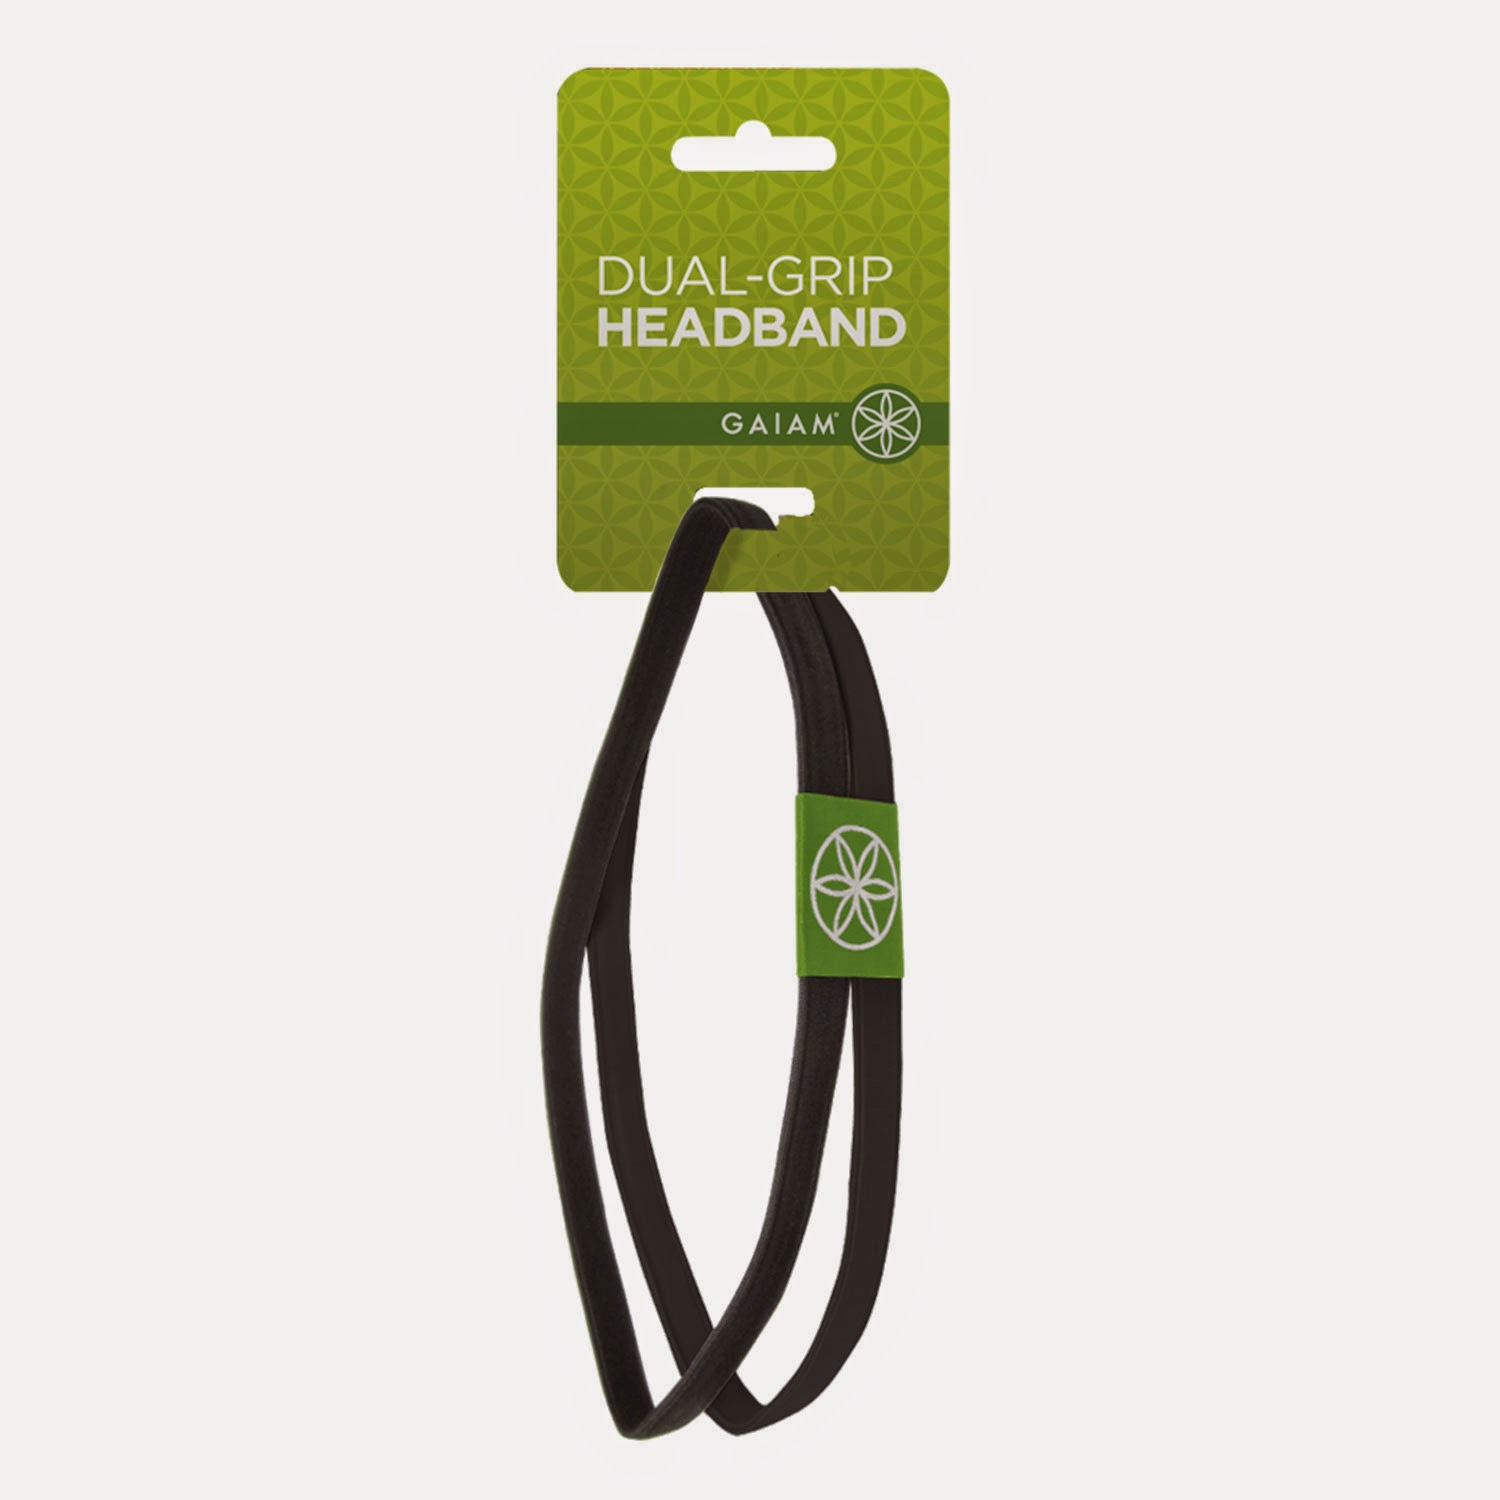 Gaiam Dual-Grip Headband